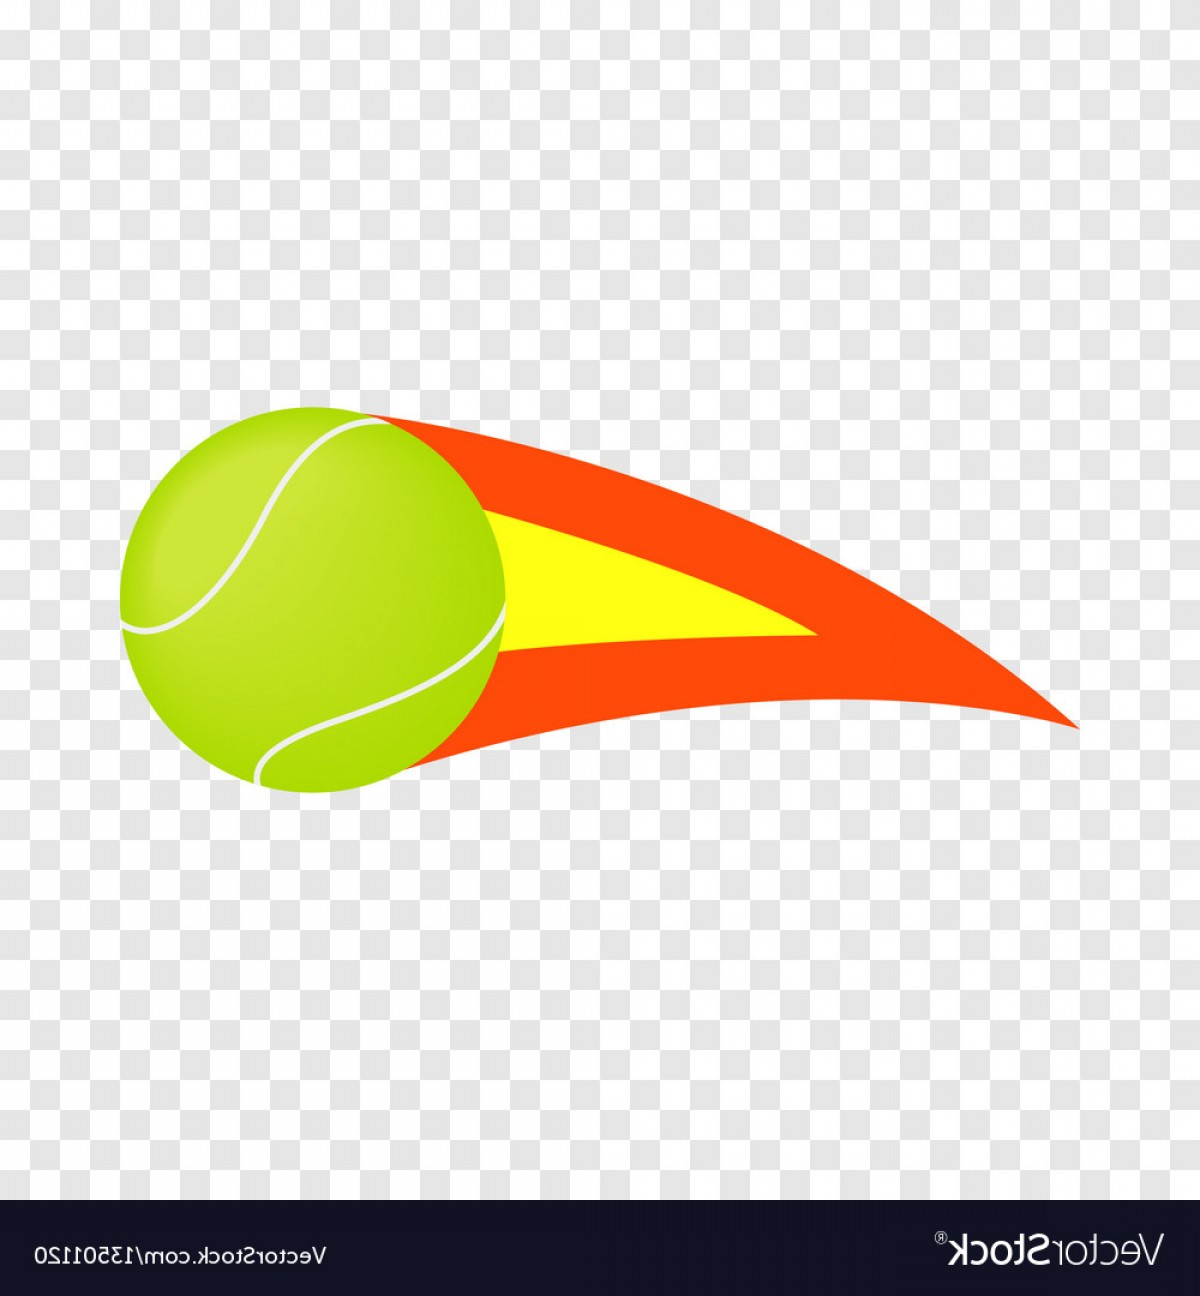 Flaming Tennis Ball Vector Art: Flaming Tennis Ball Isometric Icon Vector